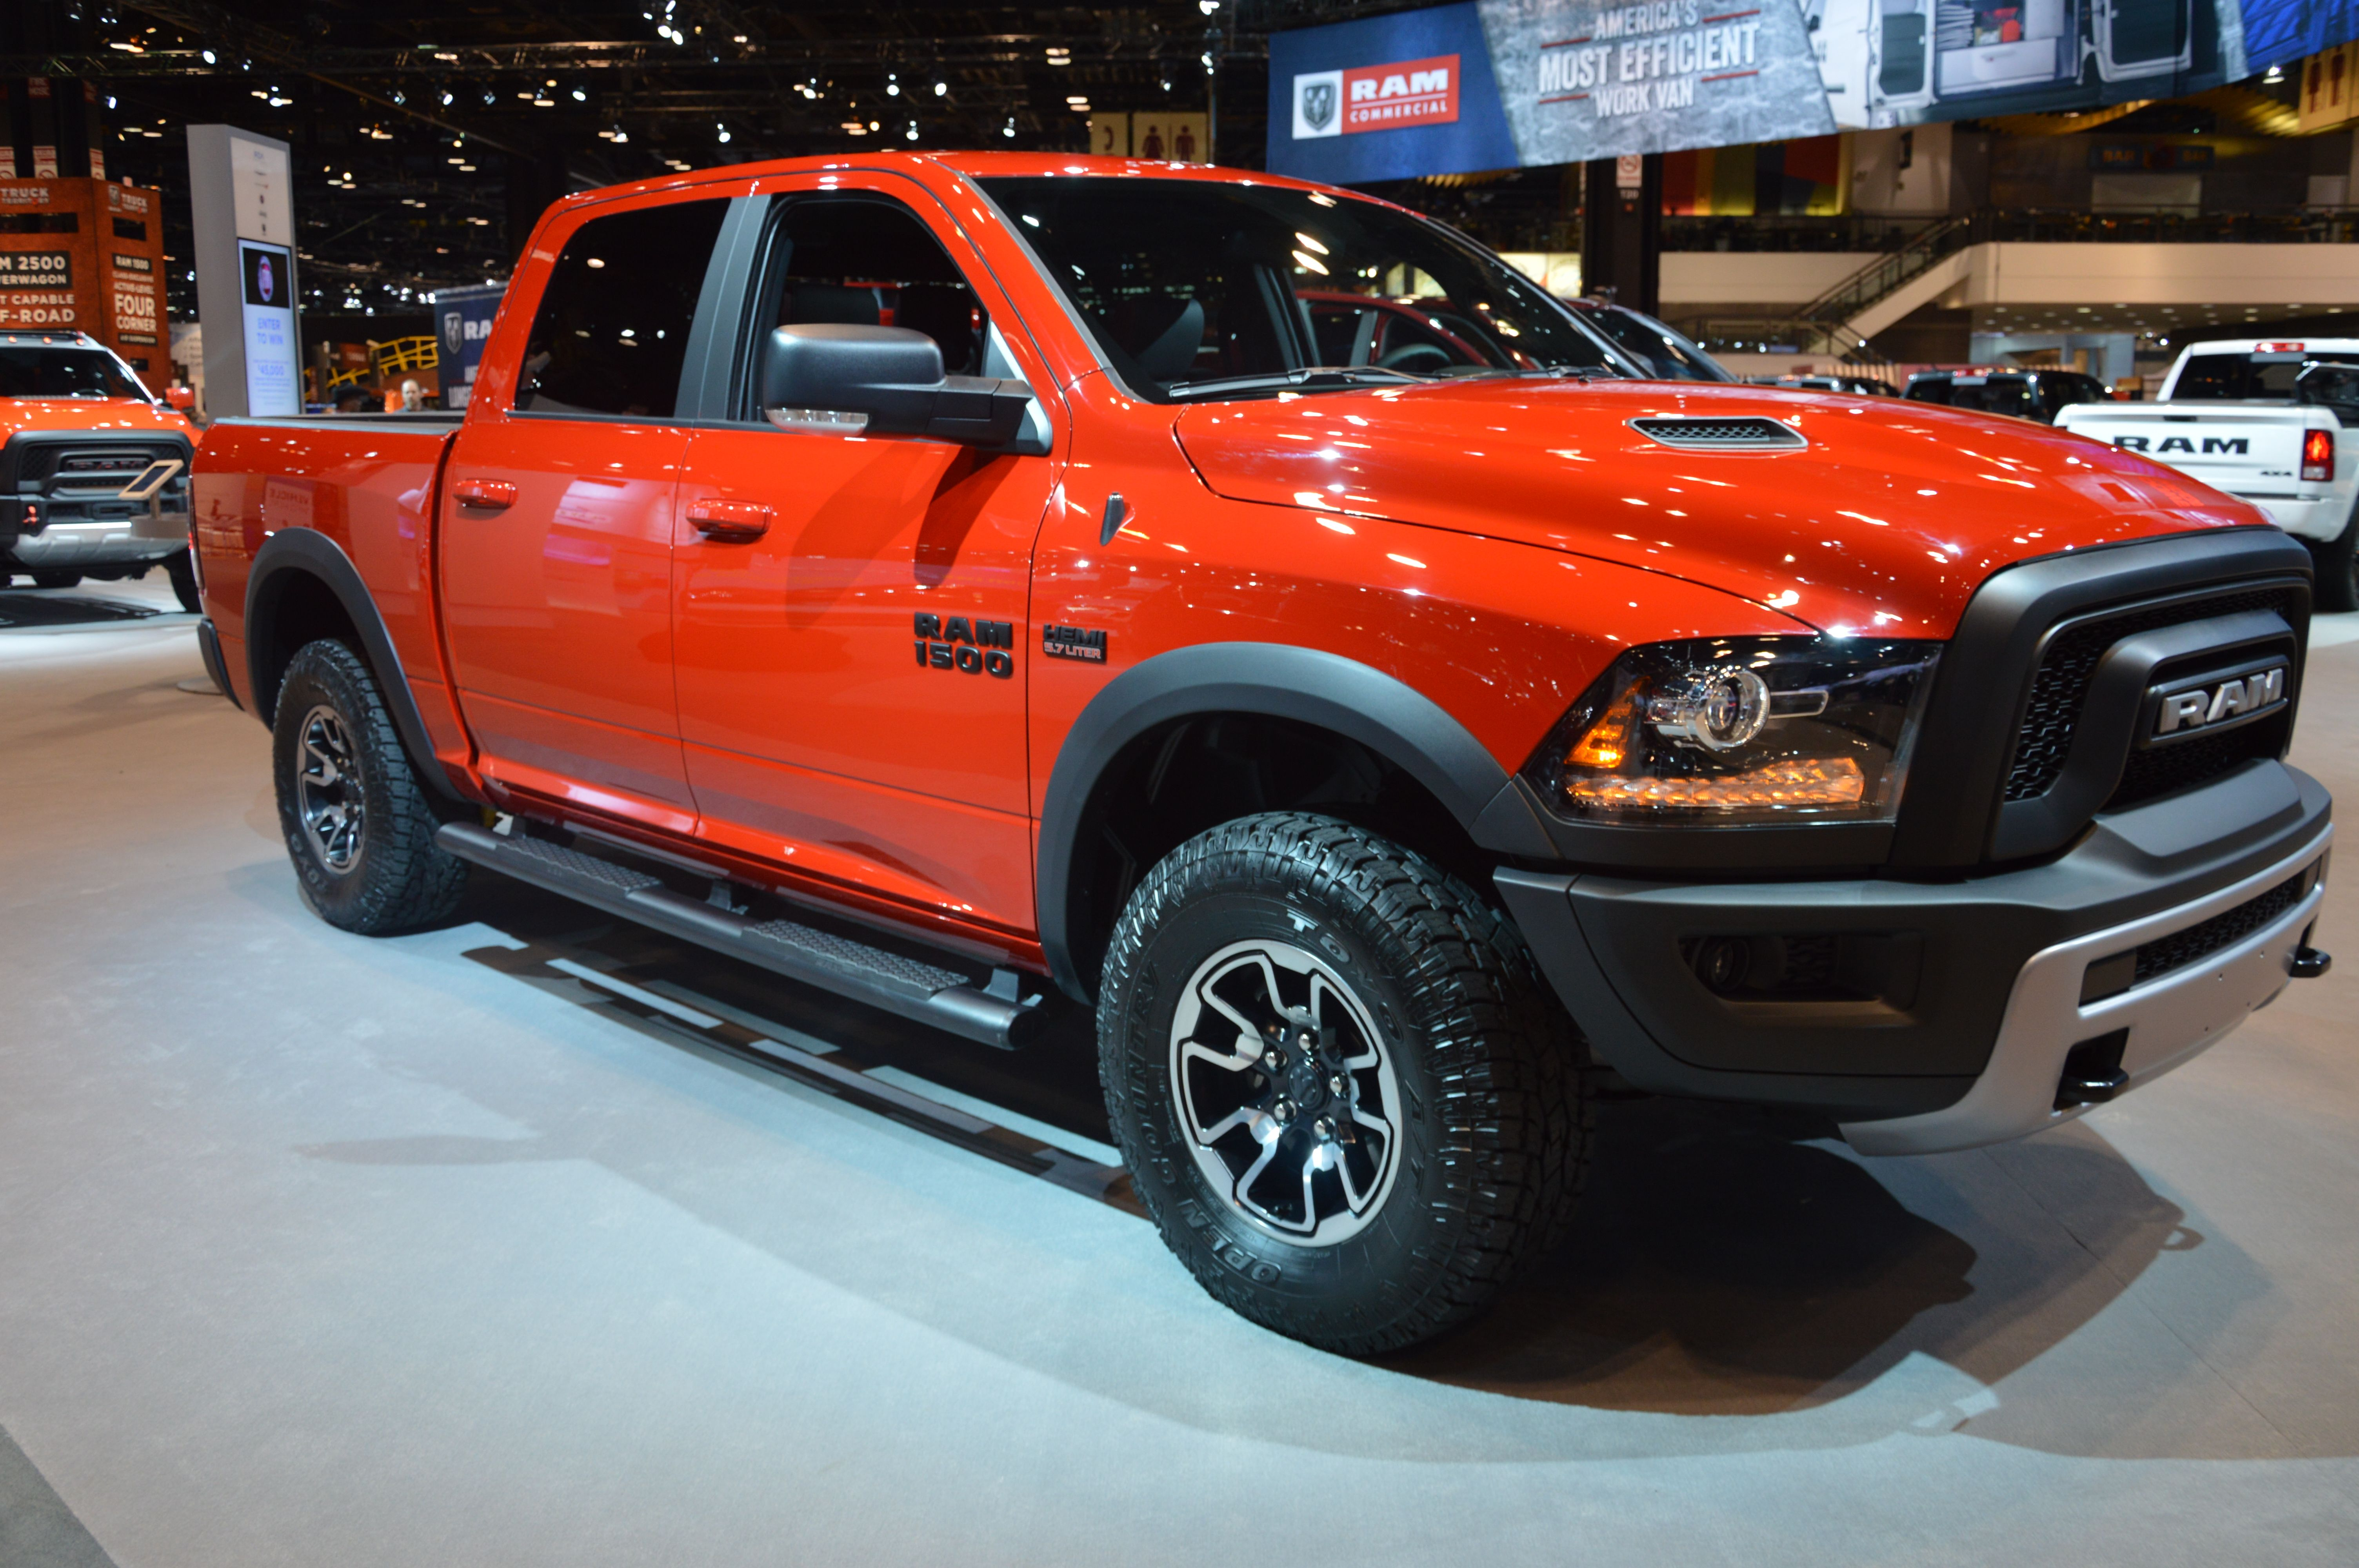 Elegant Fields Chrysler Jeep Dodge Ram Is Proud To Participate In The Chicago Auto  Show 2017. From #Ram, We Have The All New 2017 Ram 1500.